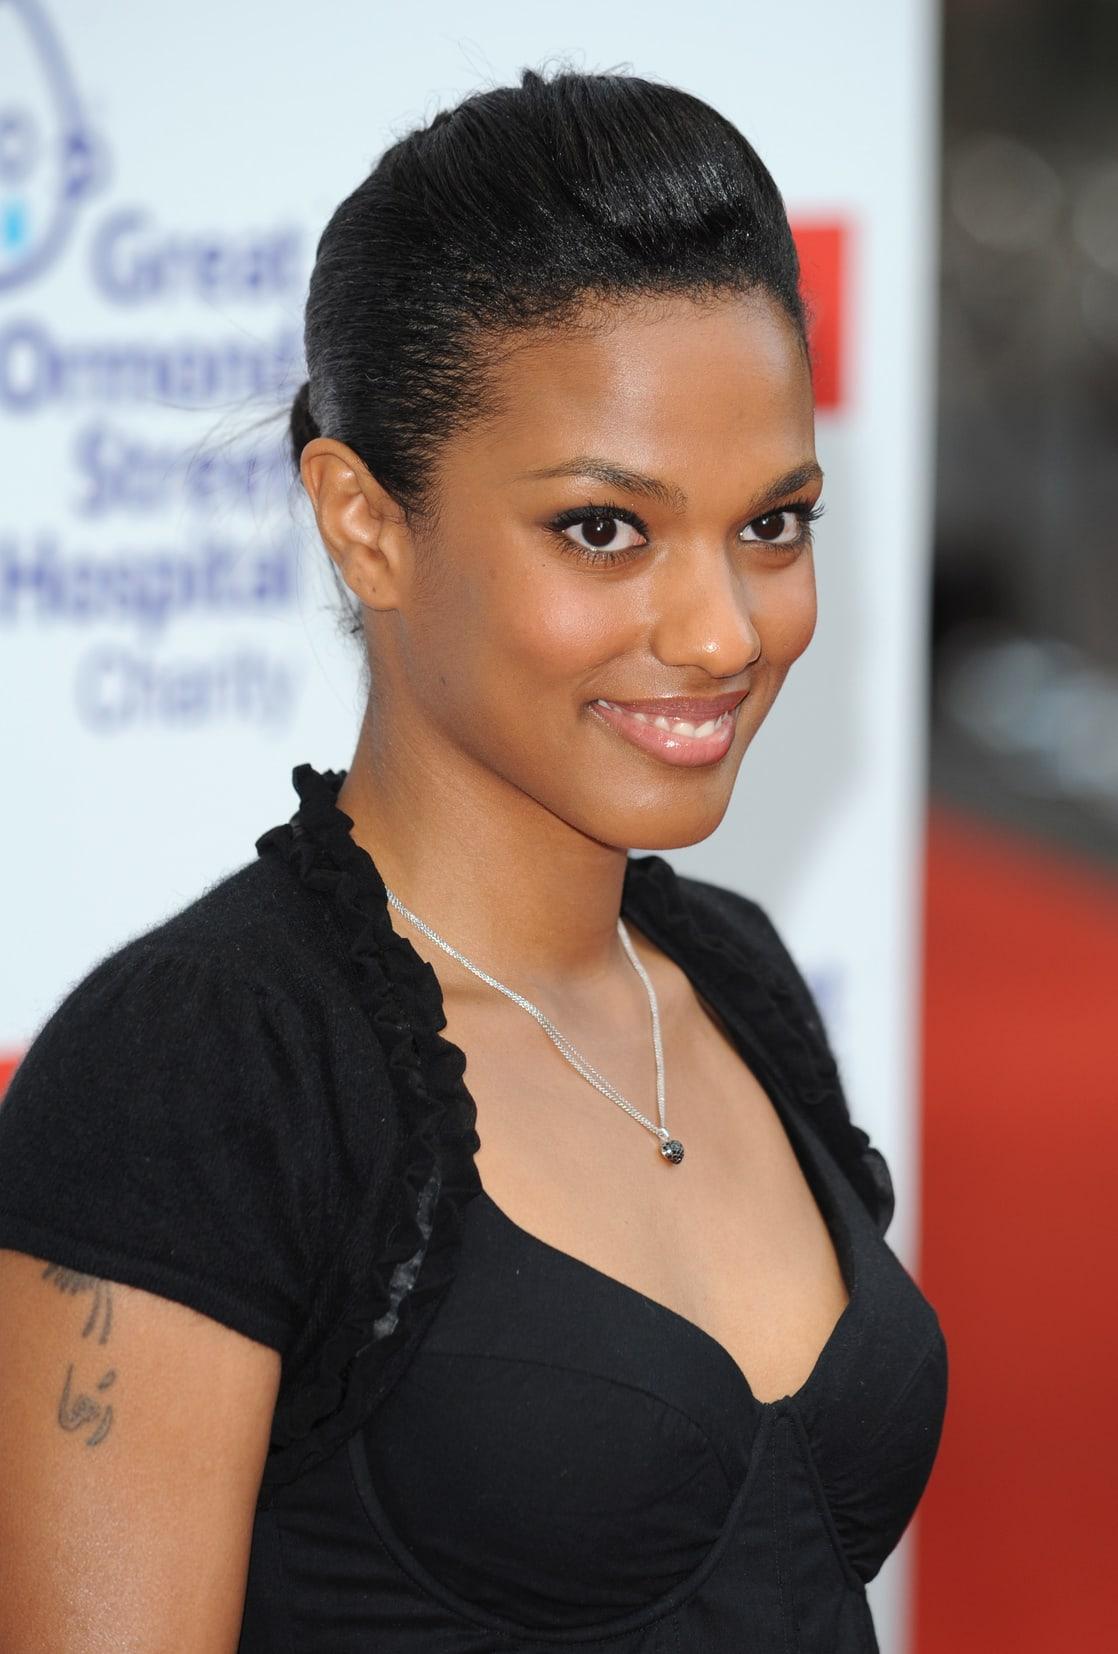 Swimsuit Freema Agyeman nudes (15 fotos) Hacked, Twitter, panties